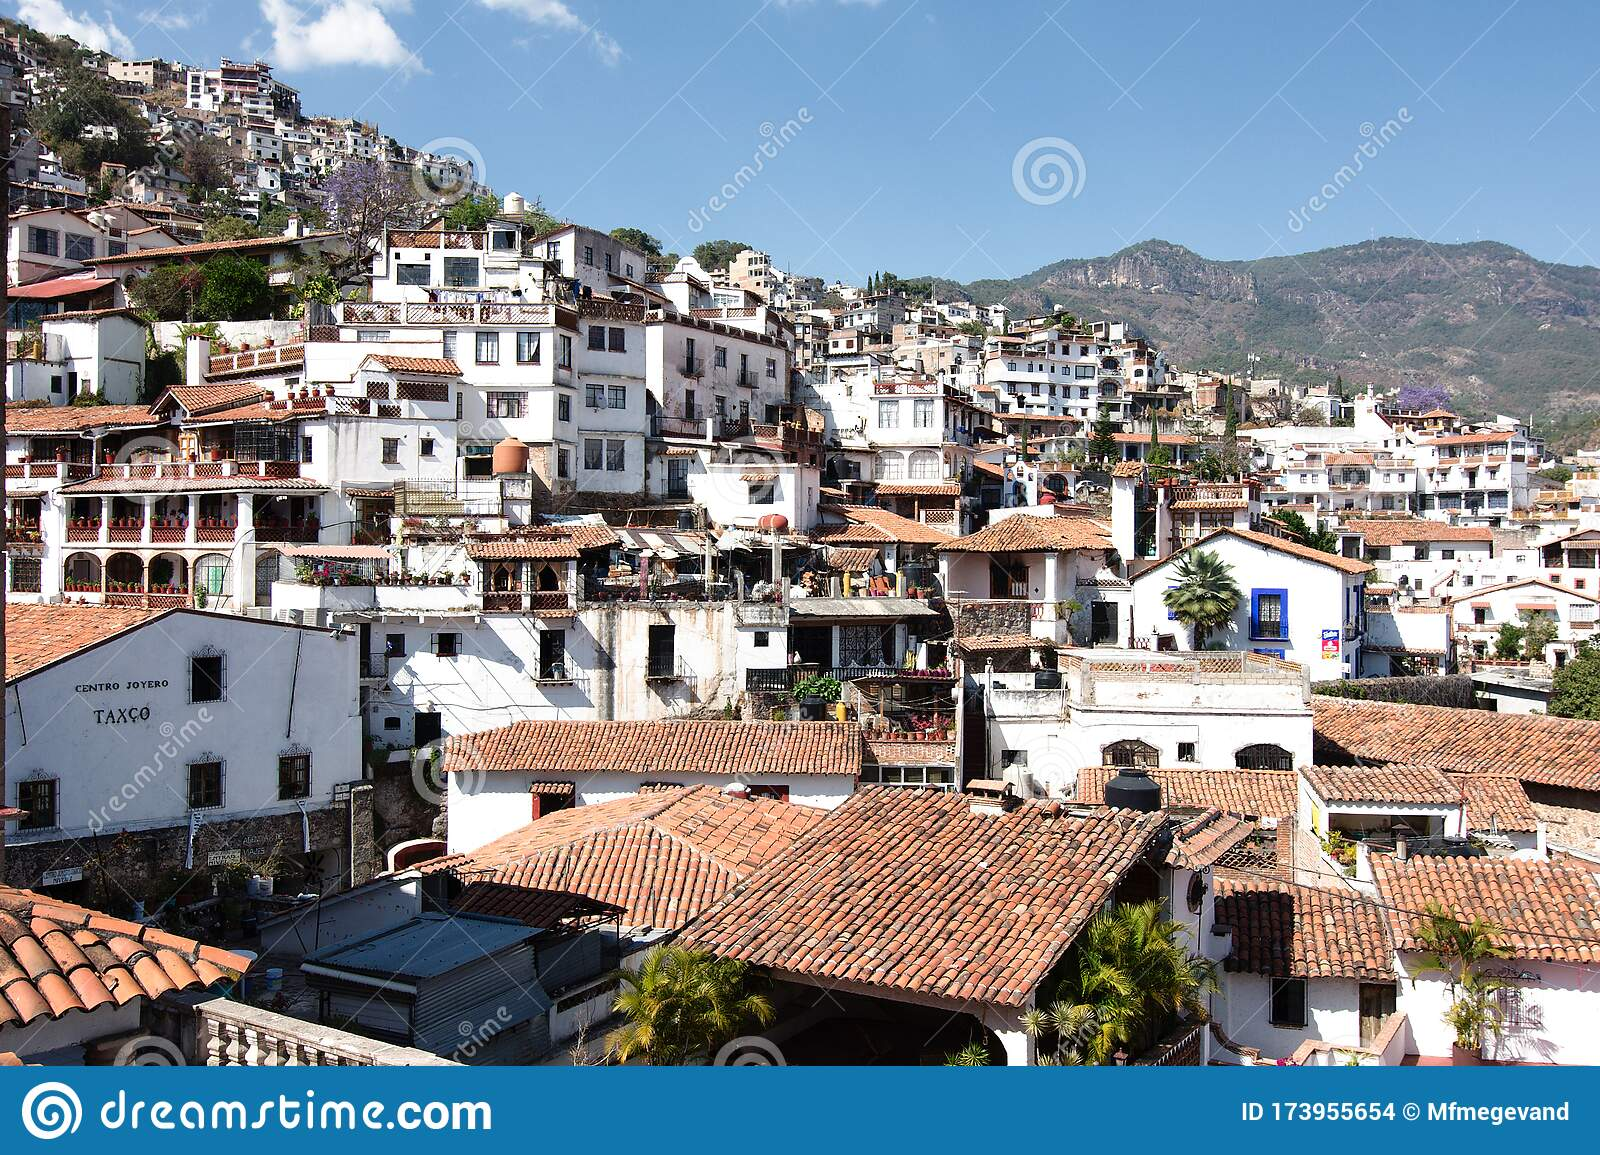 Panoramic View Of Taxco Mexico Stock Photo Image Of Landscape Holiday 173955654